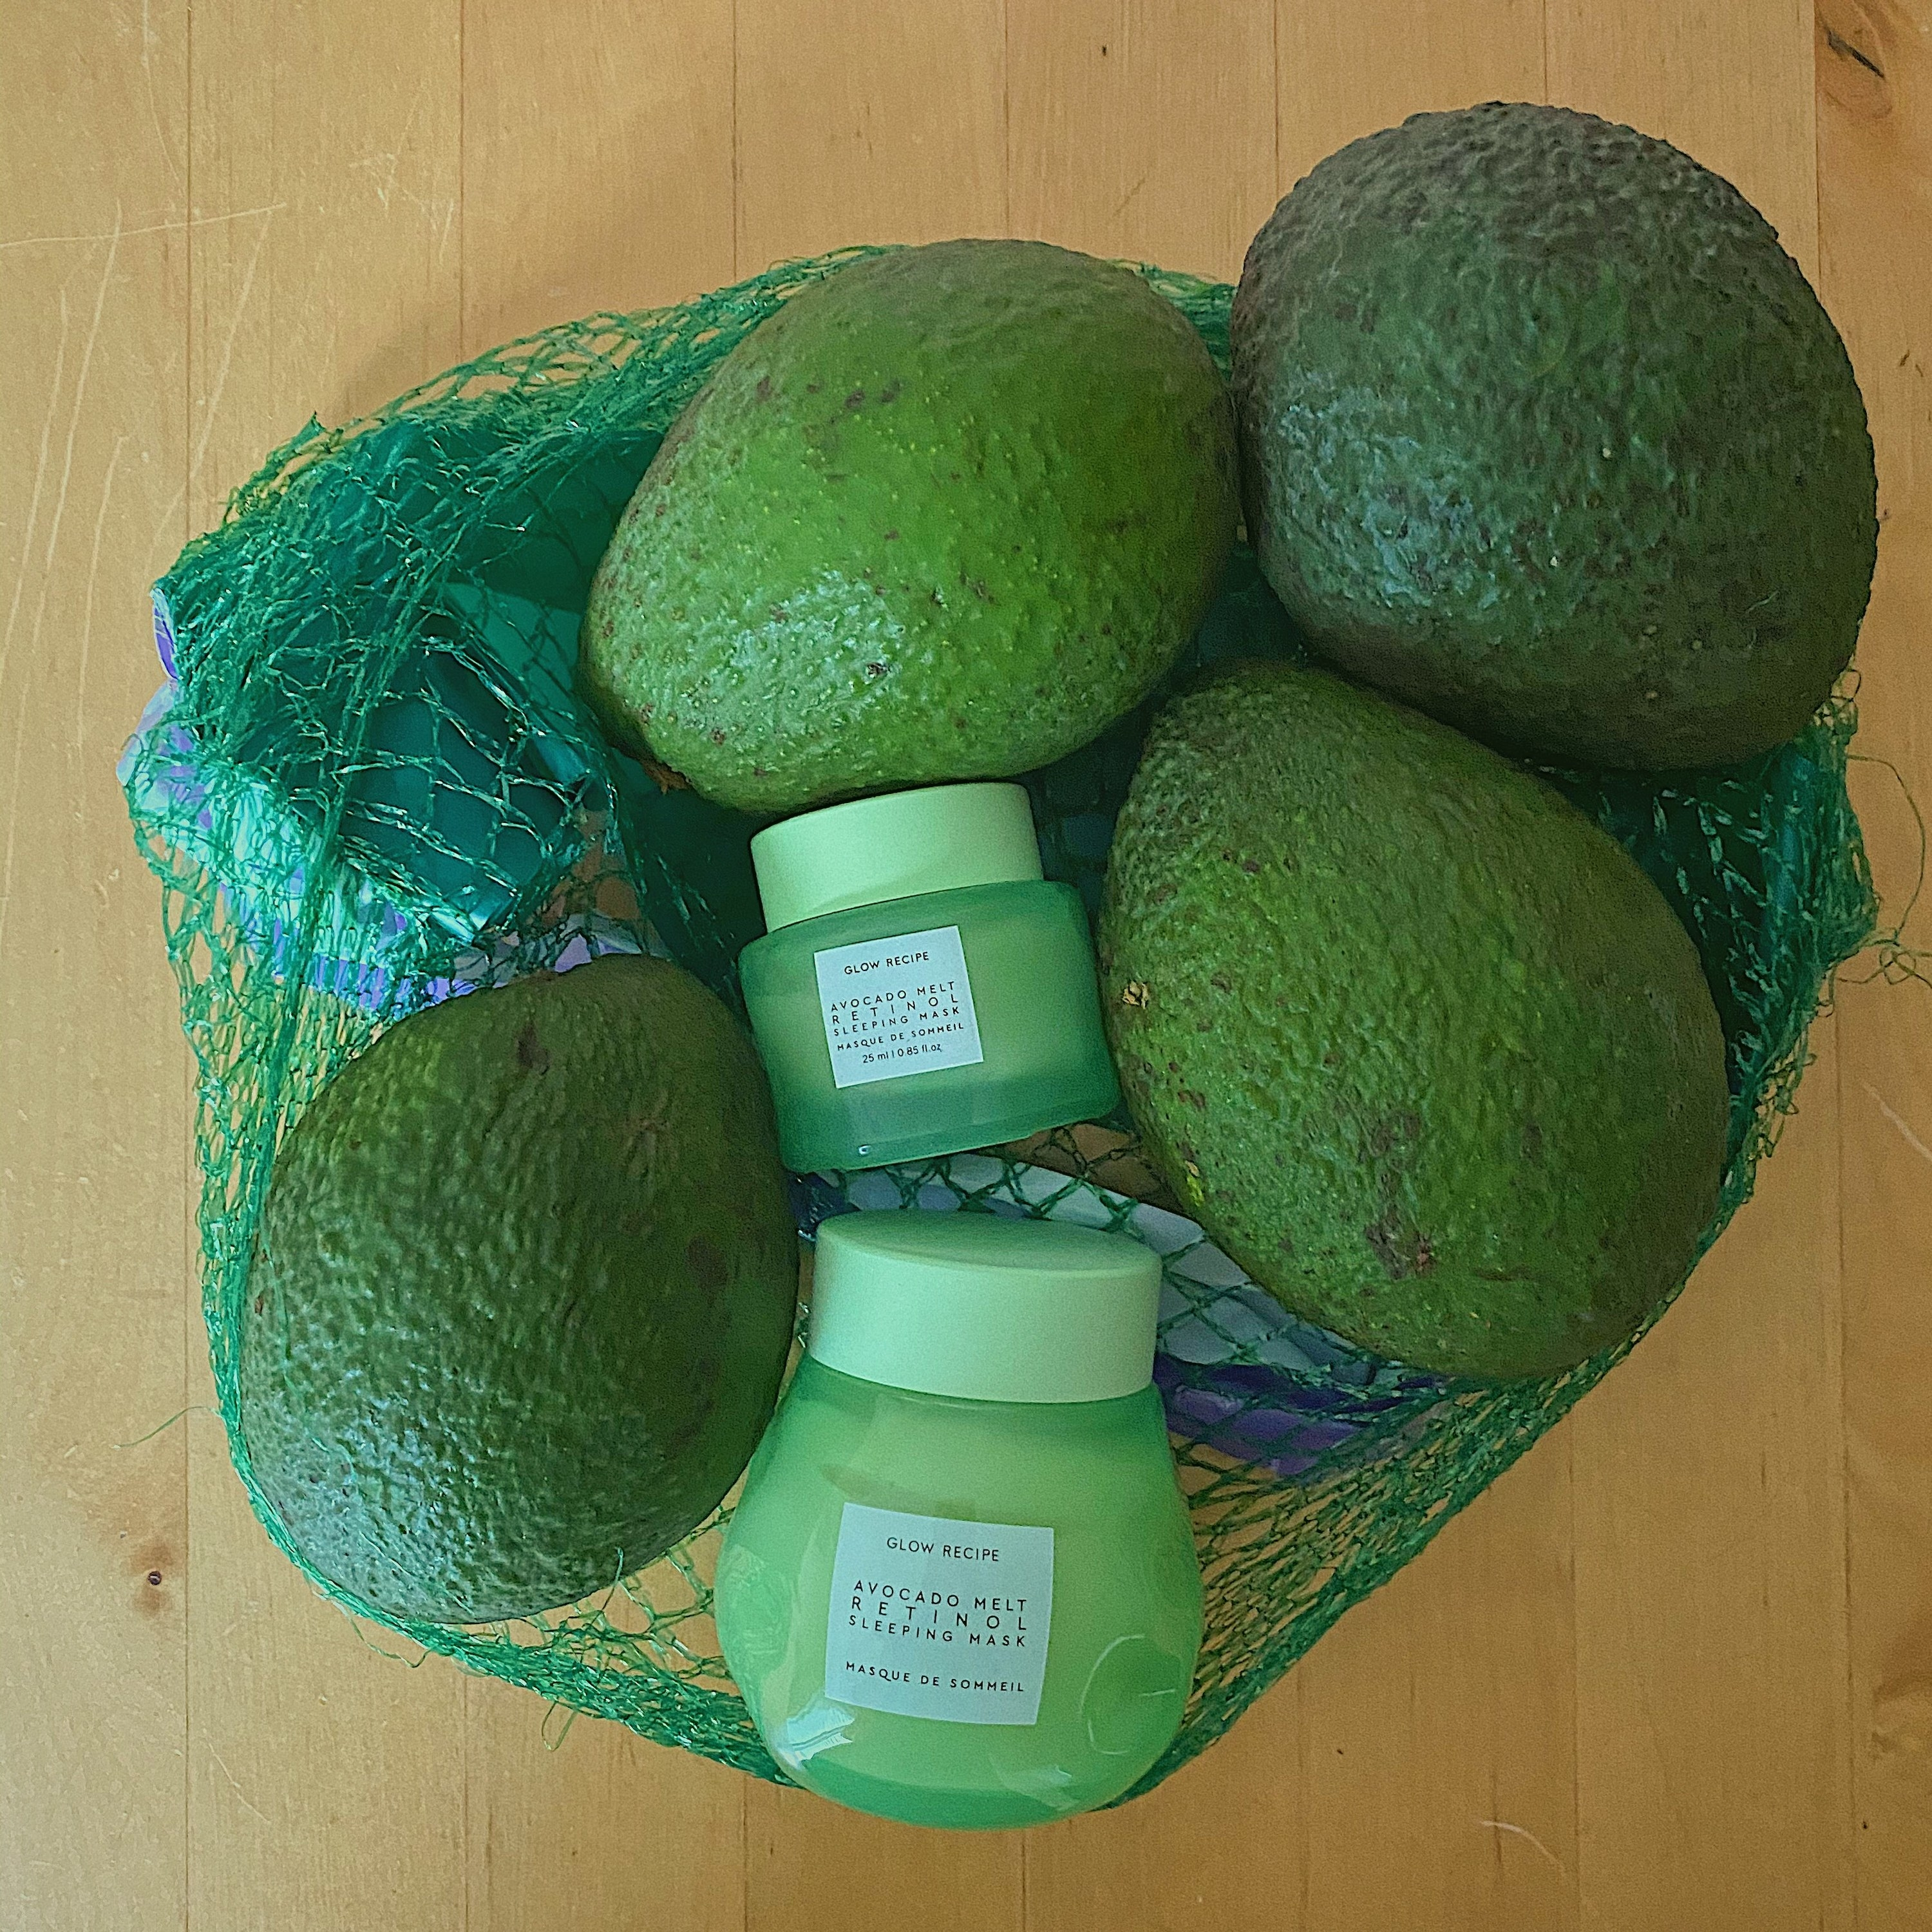 the avocado sleeping mask in a glass green jar in a pile of avocados